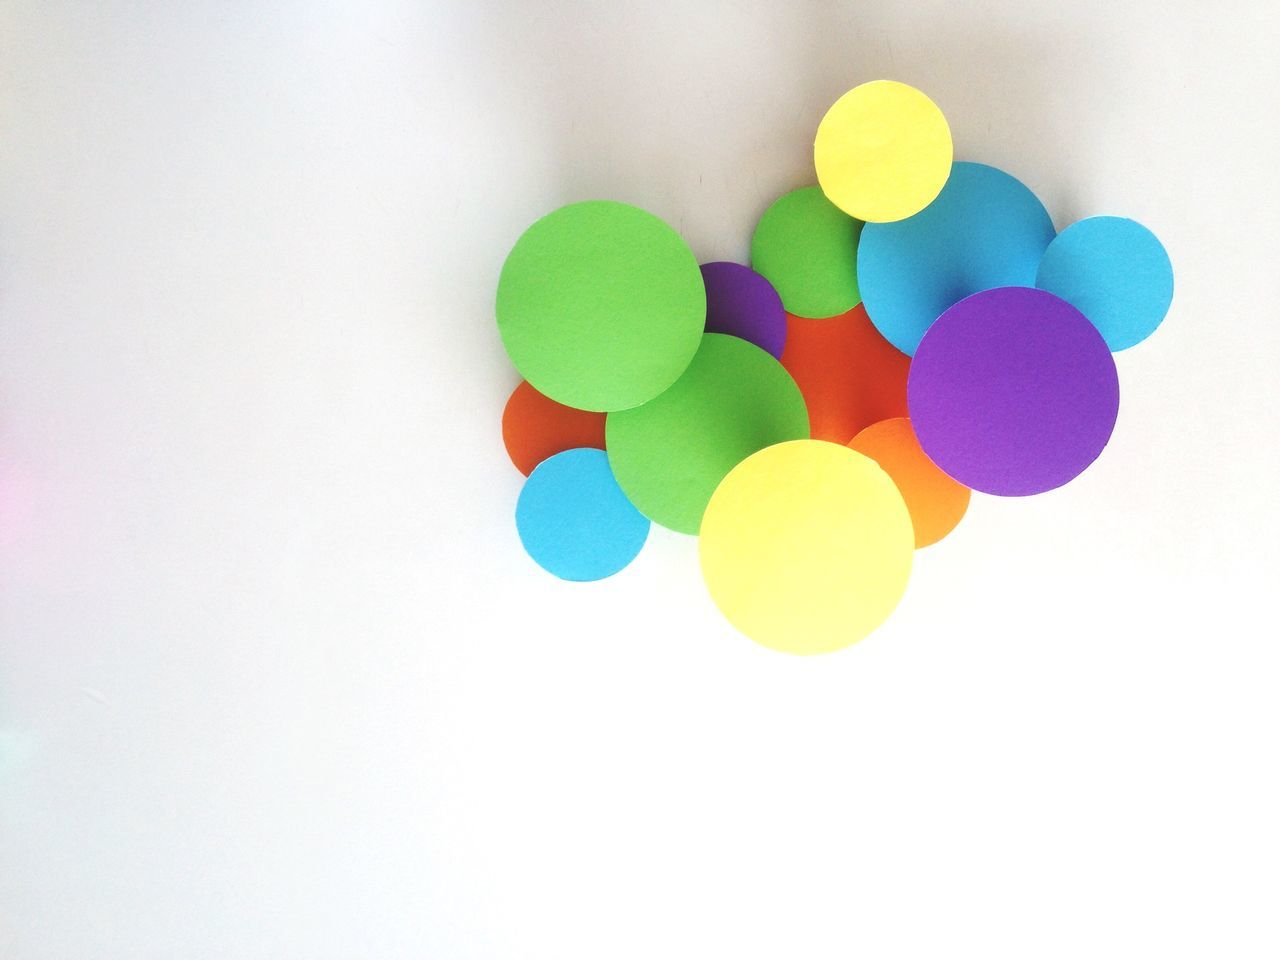 Beautiful stock photos of shape, Art, Art And Craft, Circle, Colorful